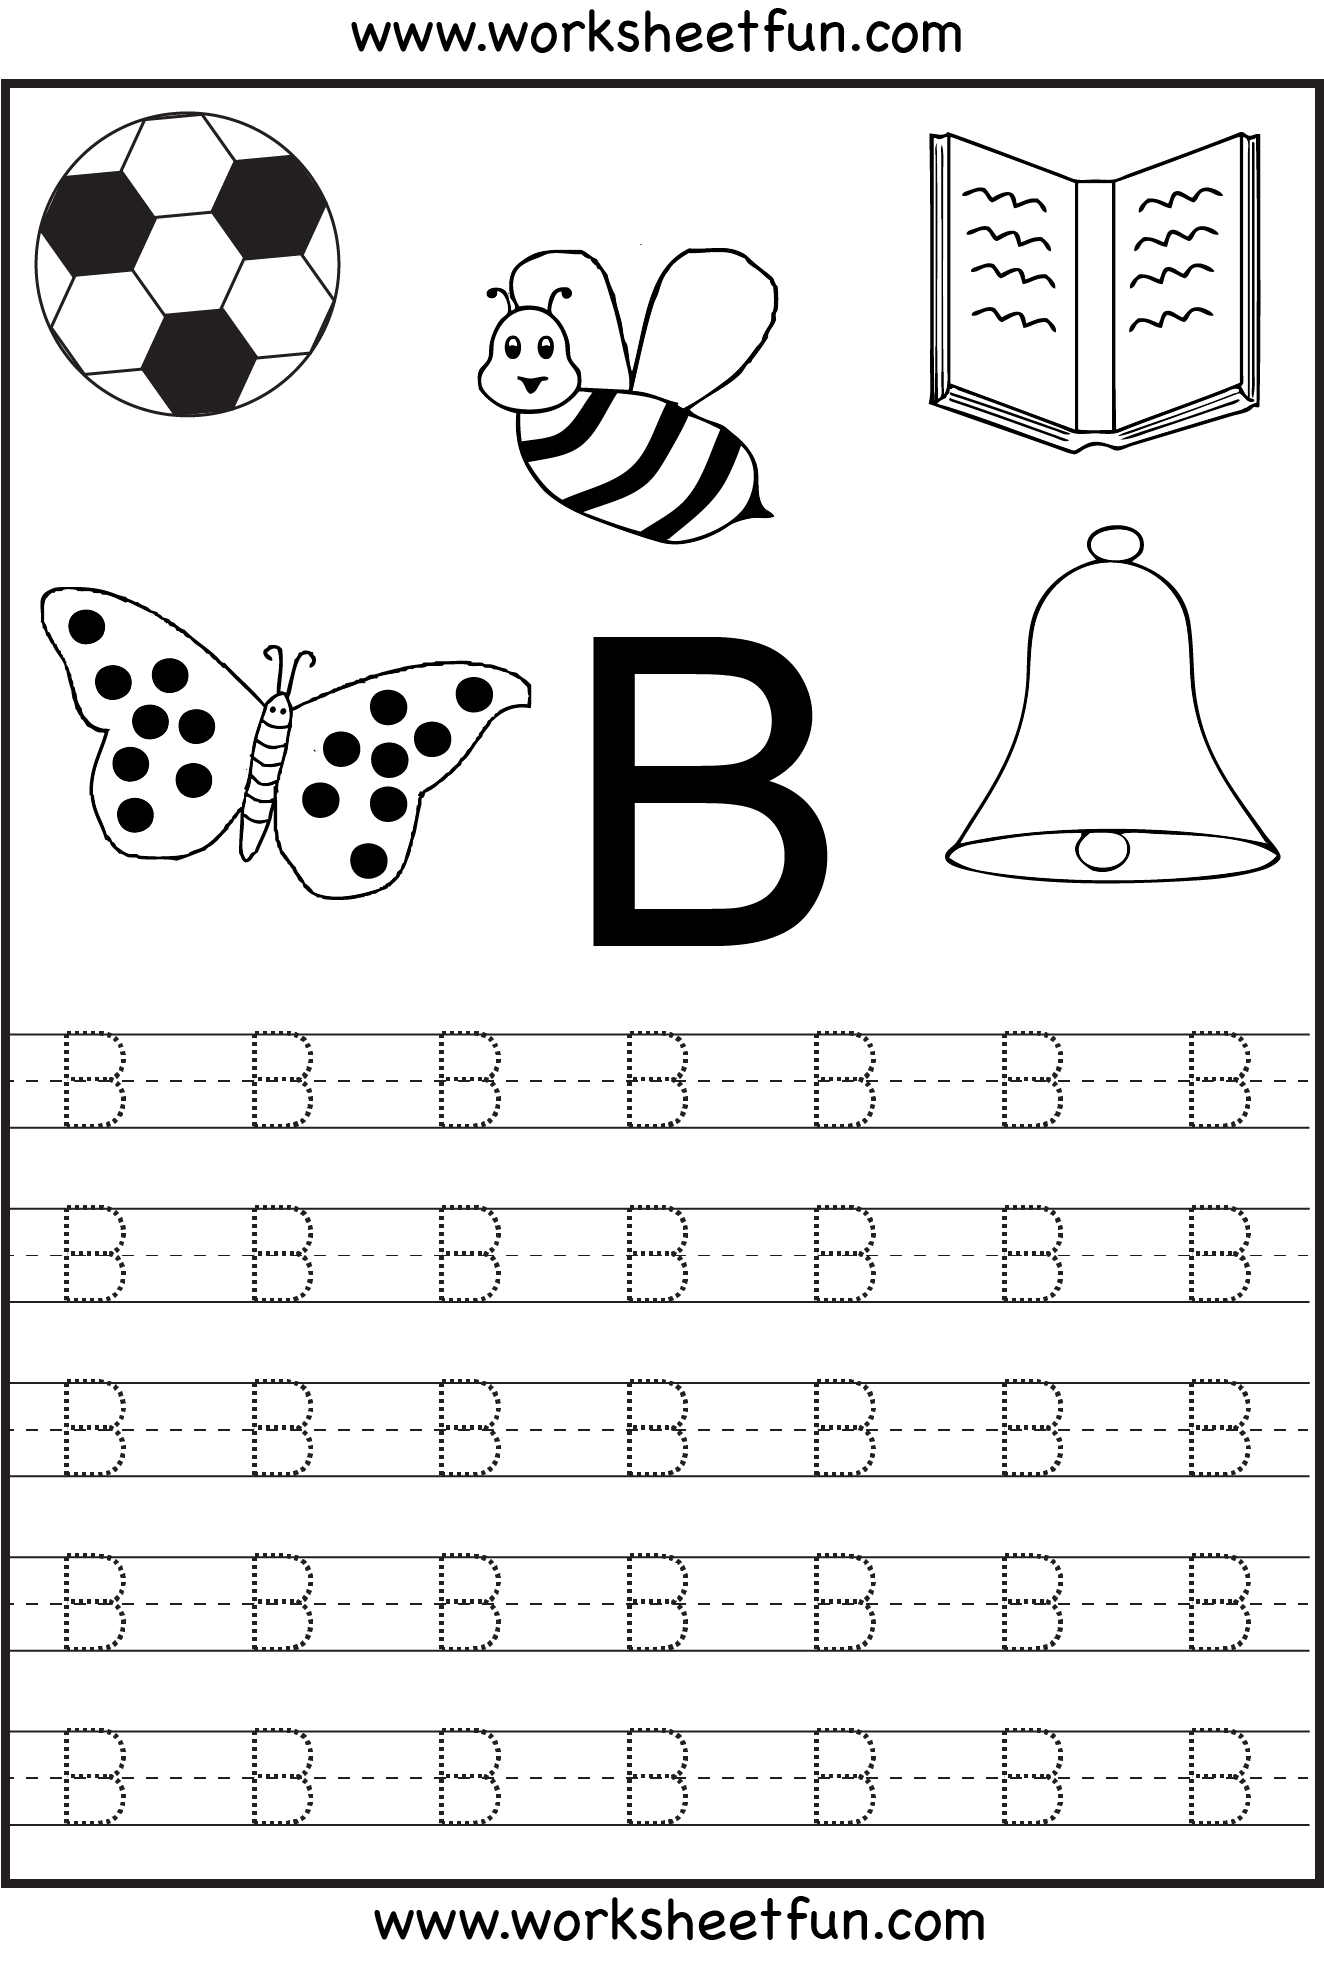 Free Printable Letter Tracing Worksheets For Kindergarten with Letter Tracing Kindergarten Worksheets